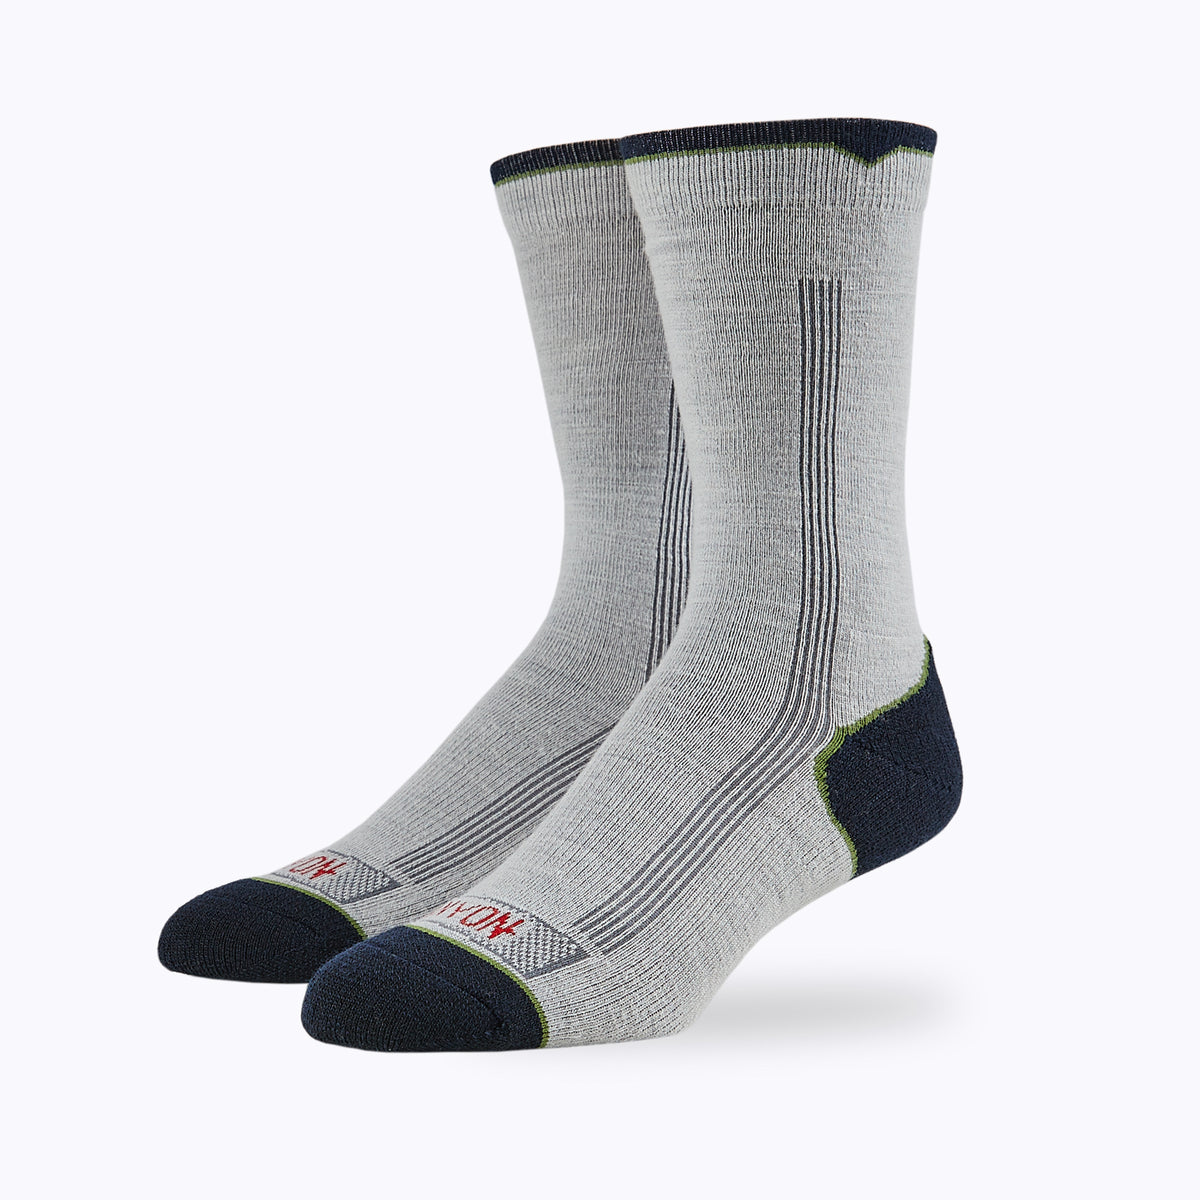 Destination Men's Crew Socks -  by Canyon Socks